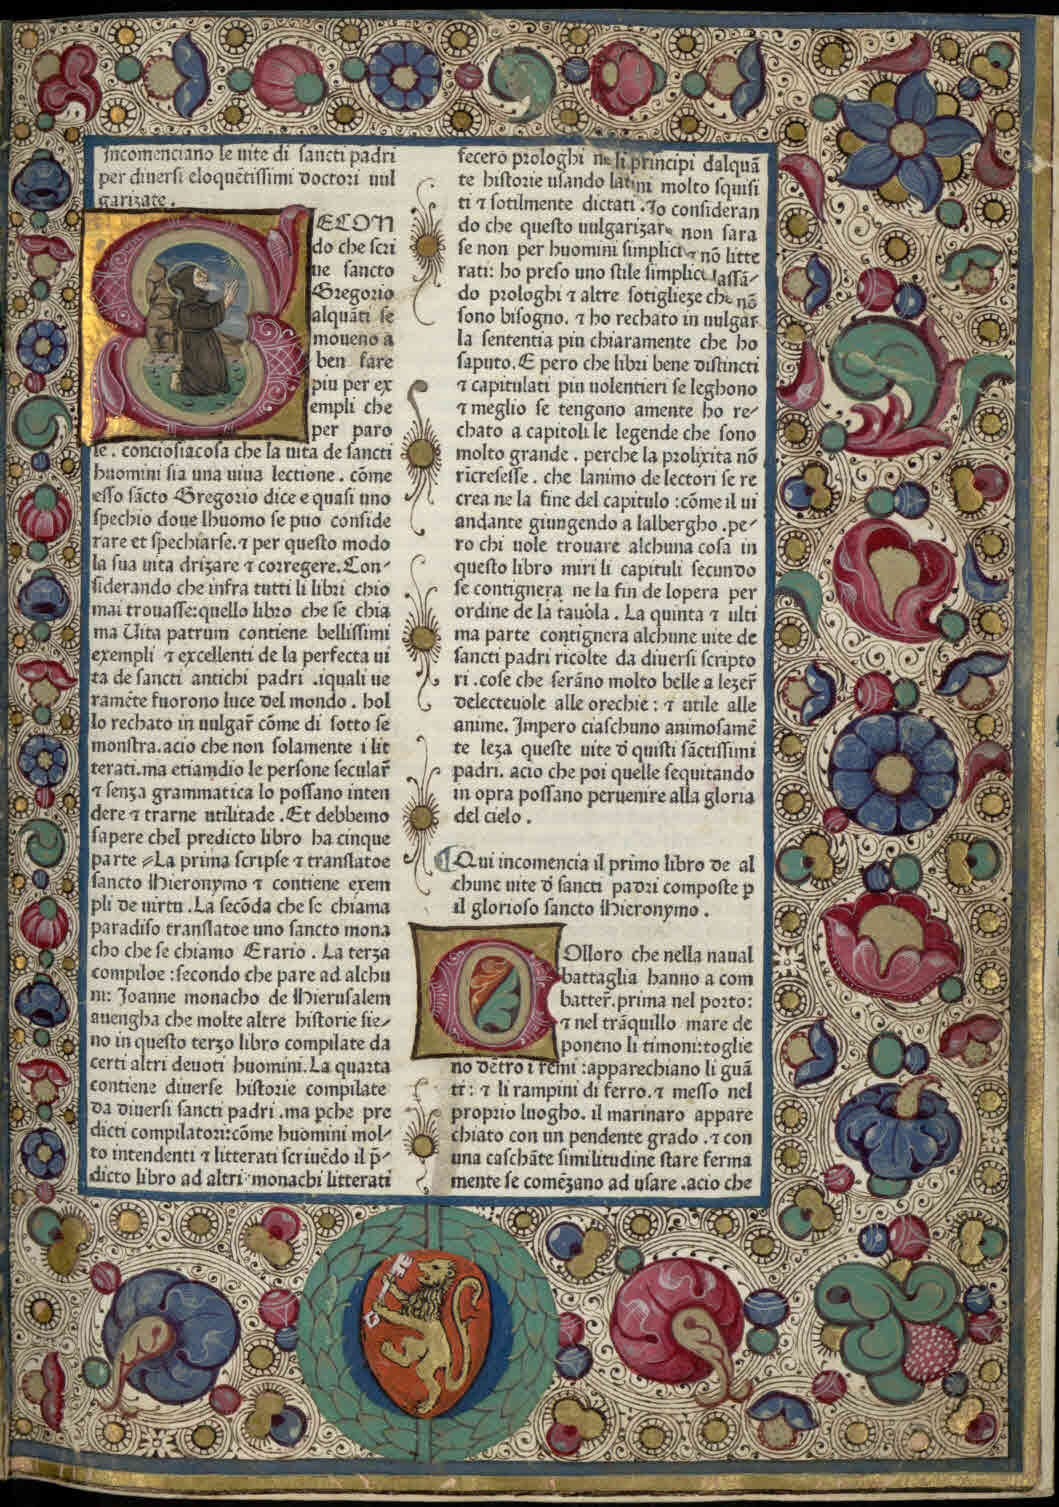 ''First page of the Italian vernacular translation of the Vitae patrum'', before 1474